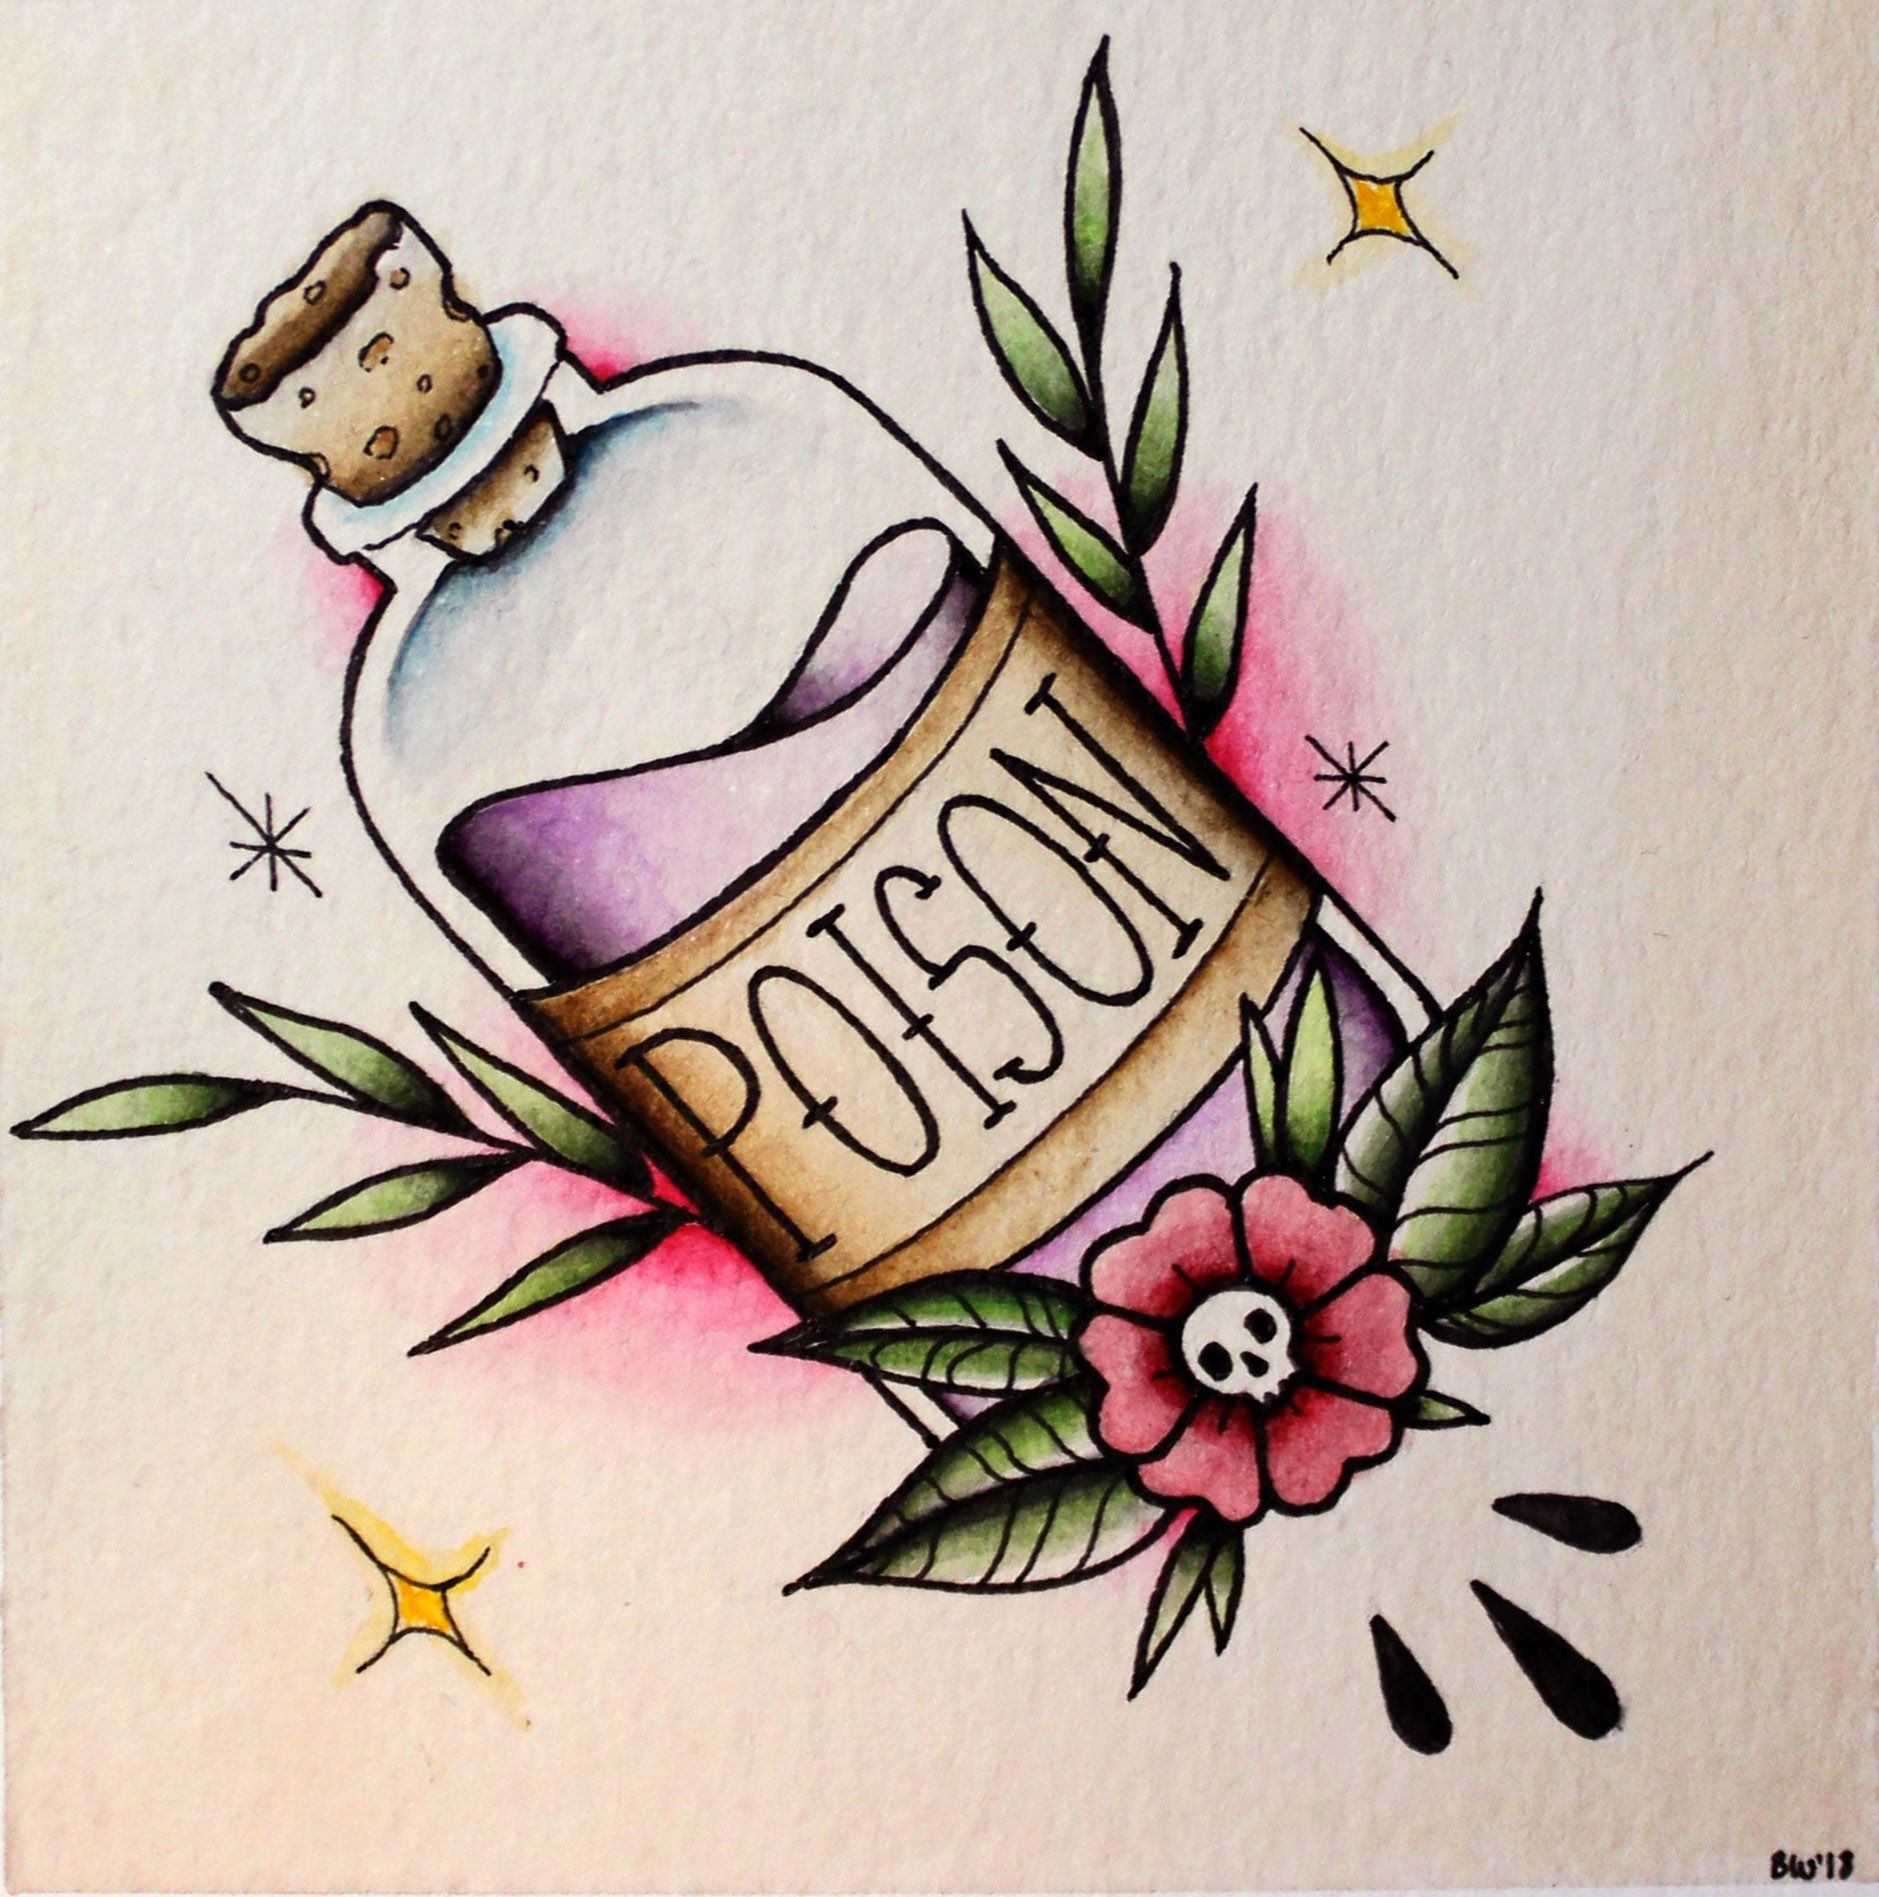 Original Poison Bottle Tattoo Flash Done With Watercolor On